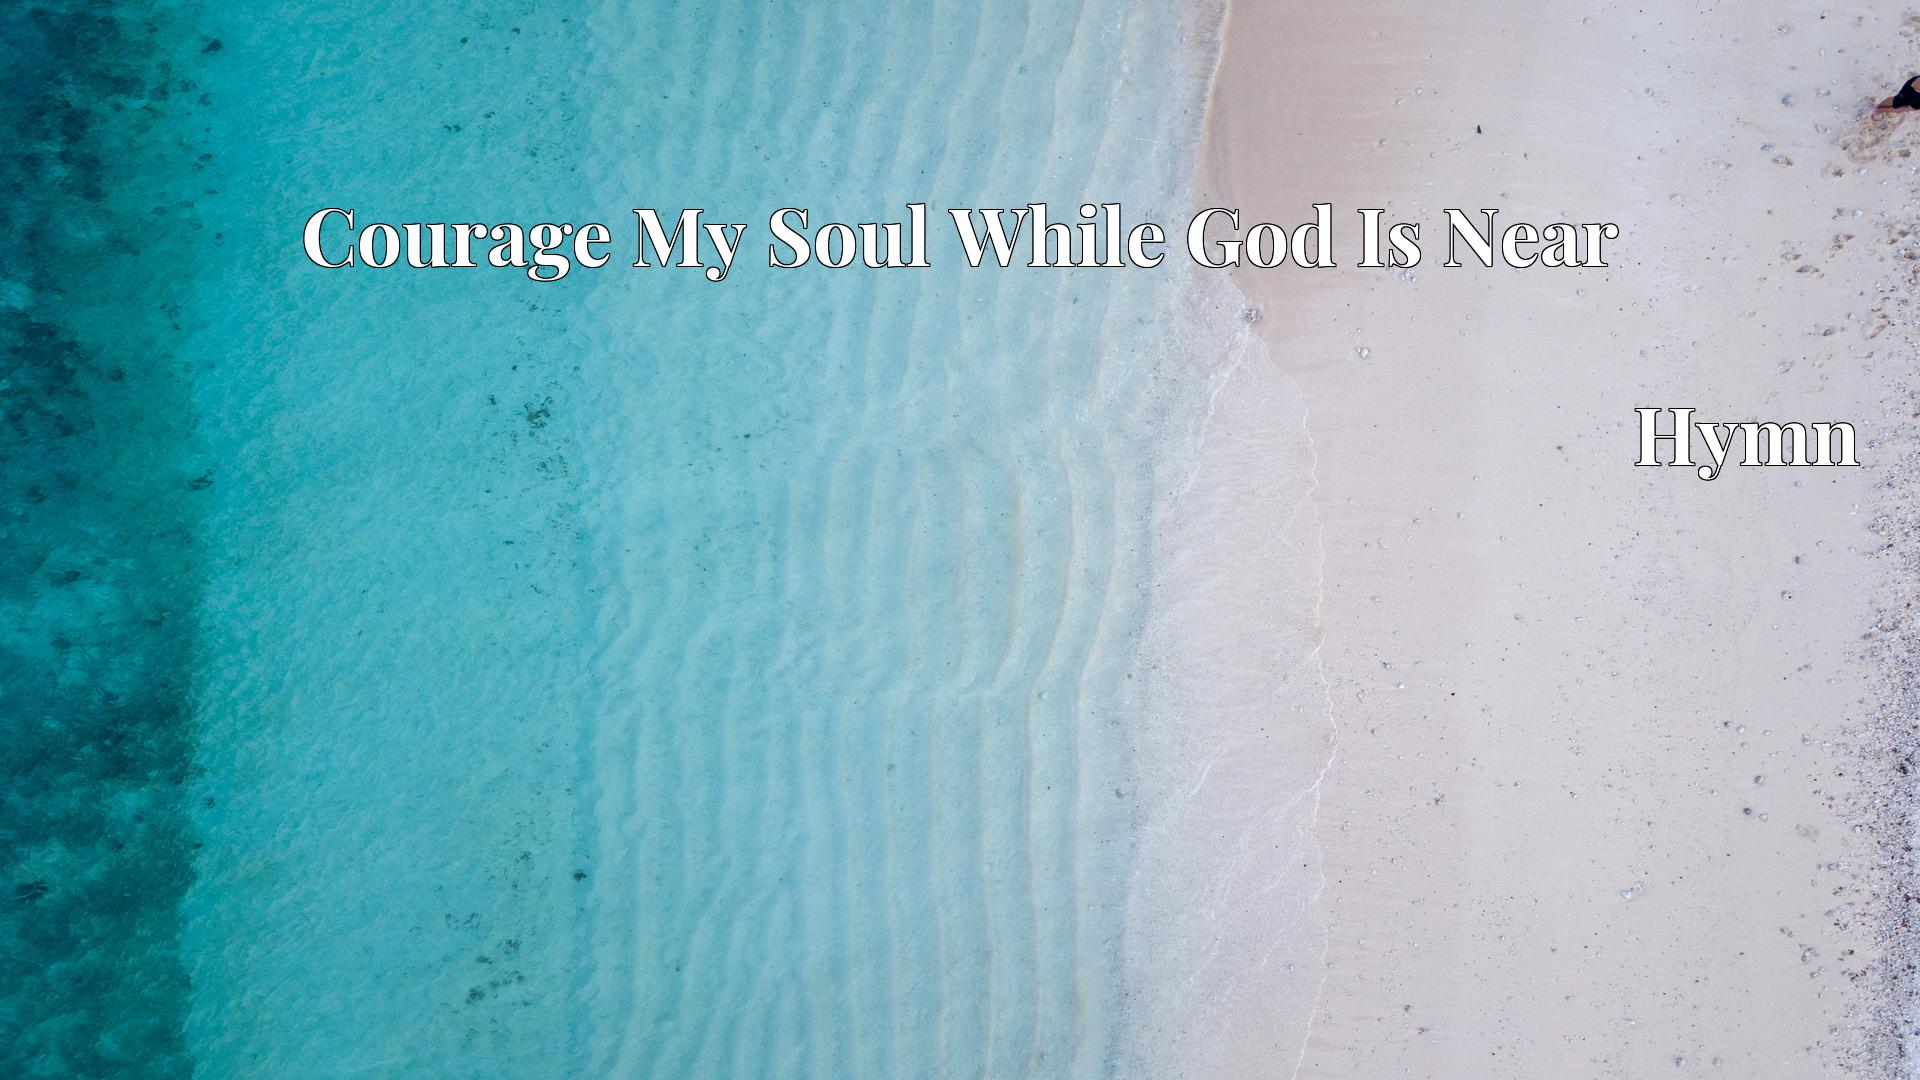 Courage My Soul While God Is Near - Hymn